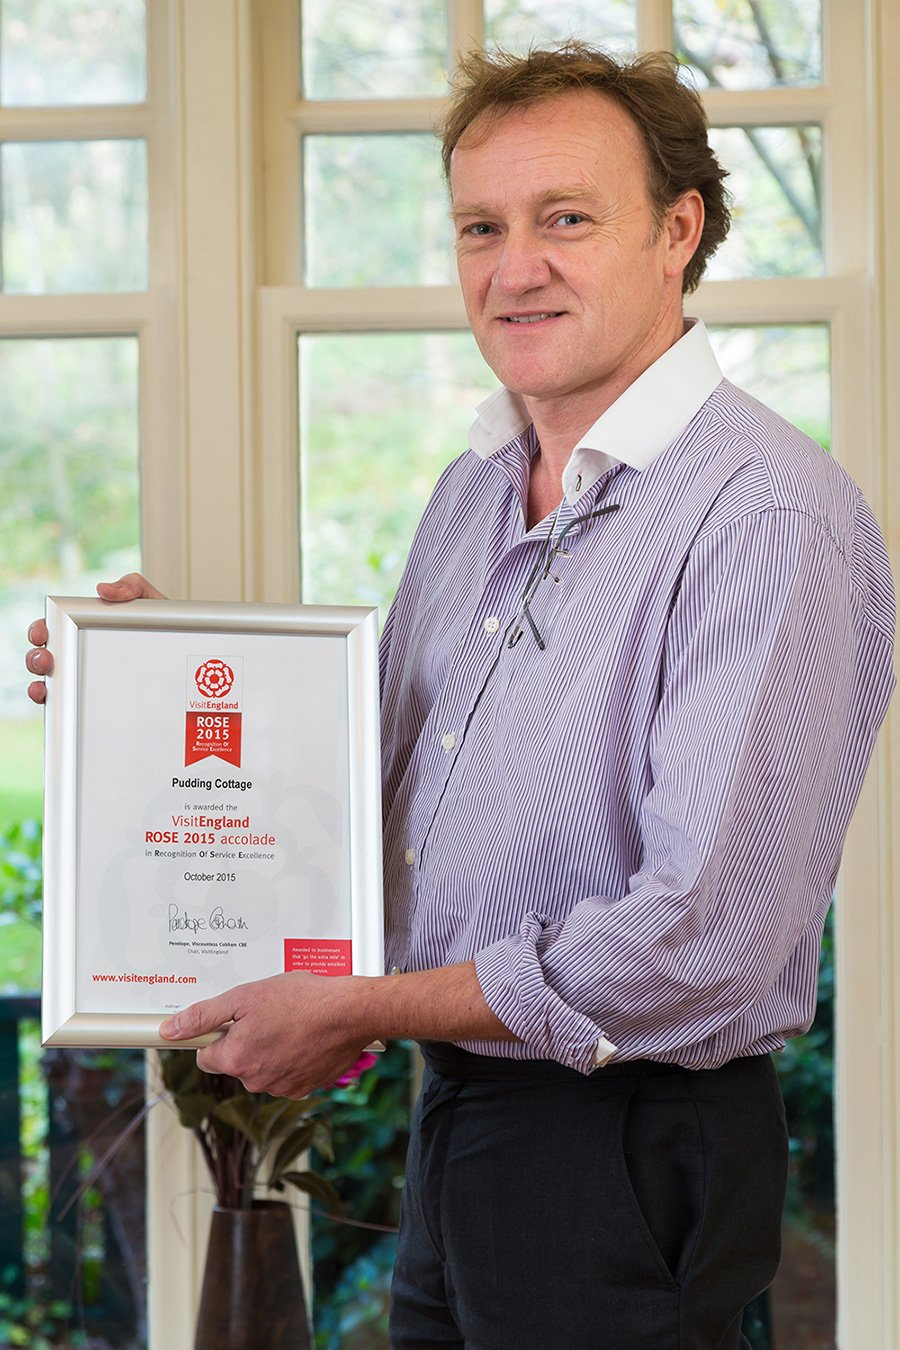 Paul Liddell, Managing Director of Lakelovers, congratulates Pudding Cottage on ROSE Award